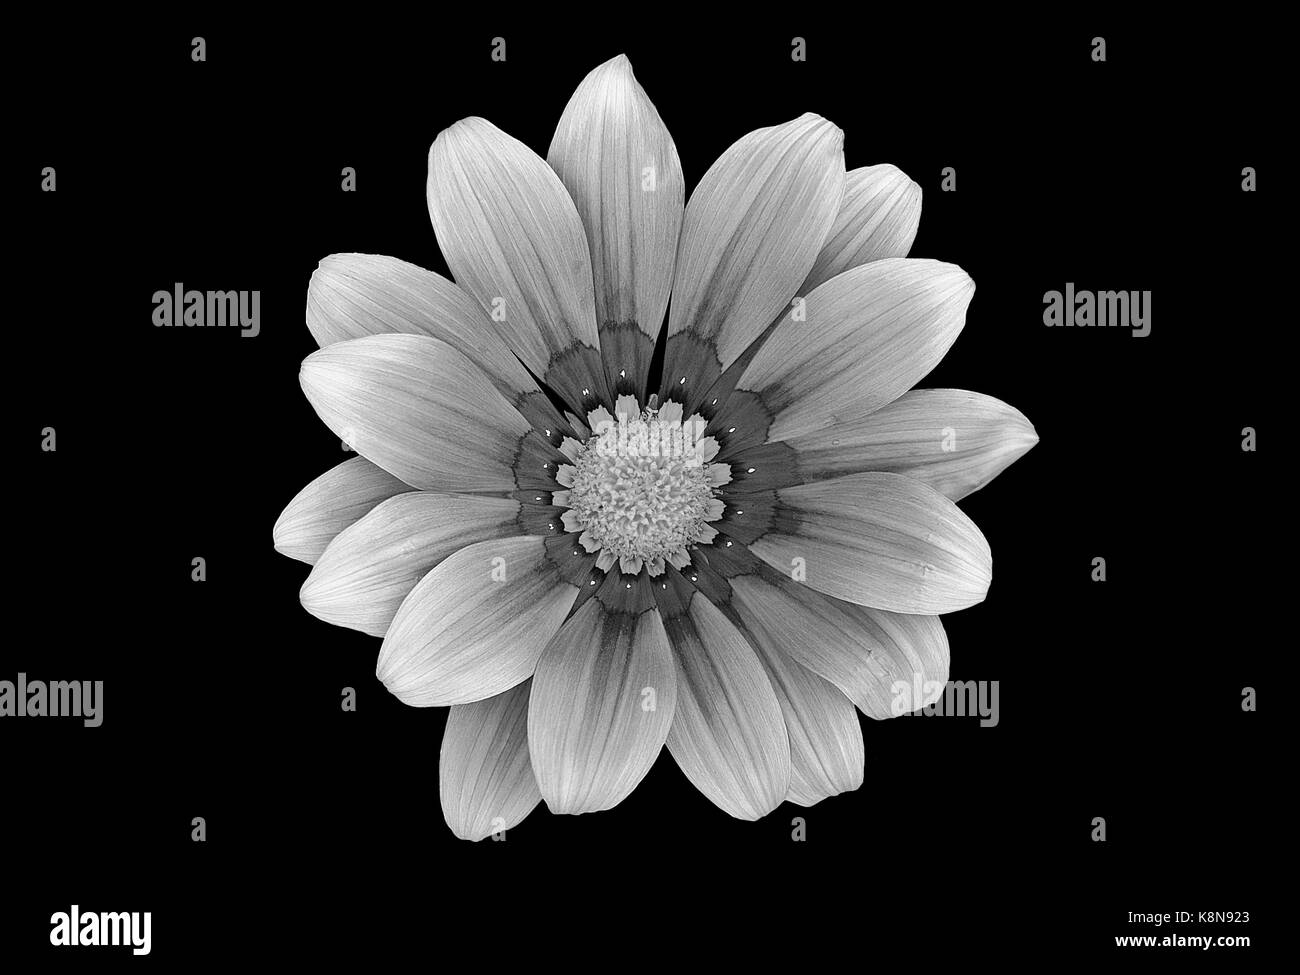 Black And White Gerbera Daisy 9472355 Cours Particuliers Domicilefo